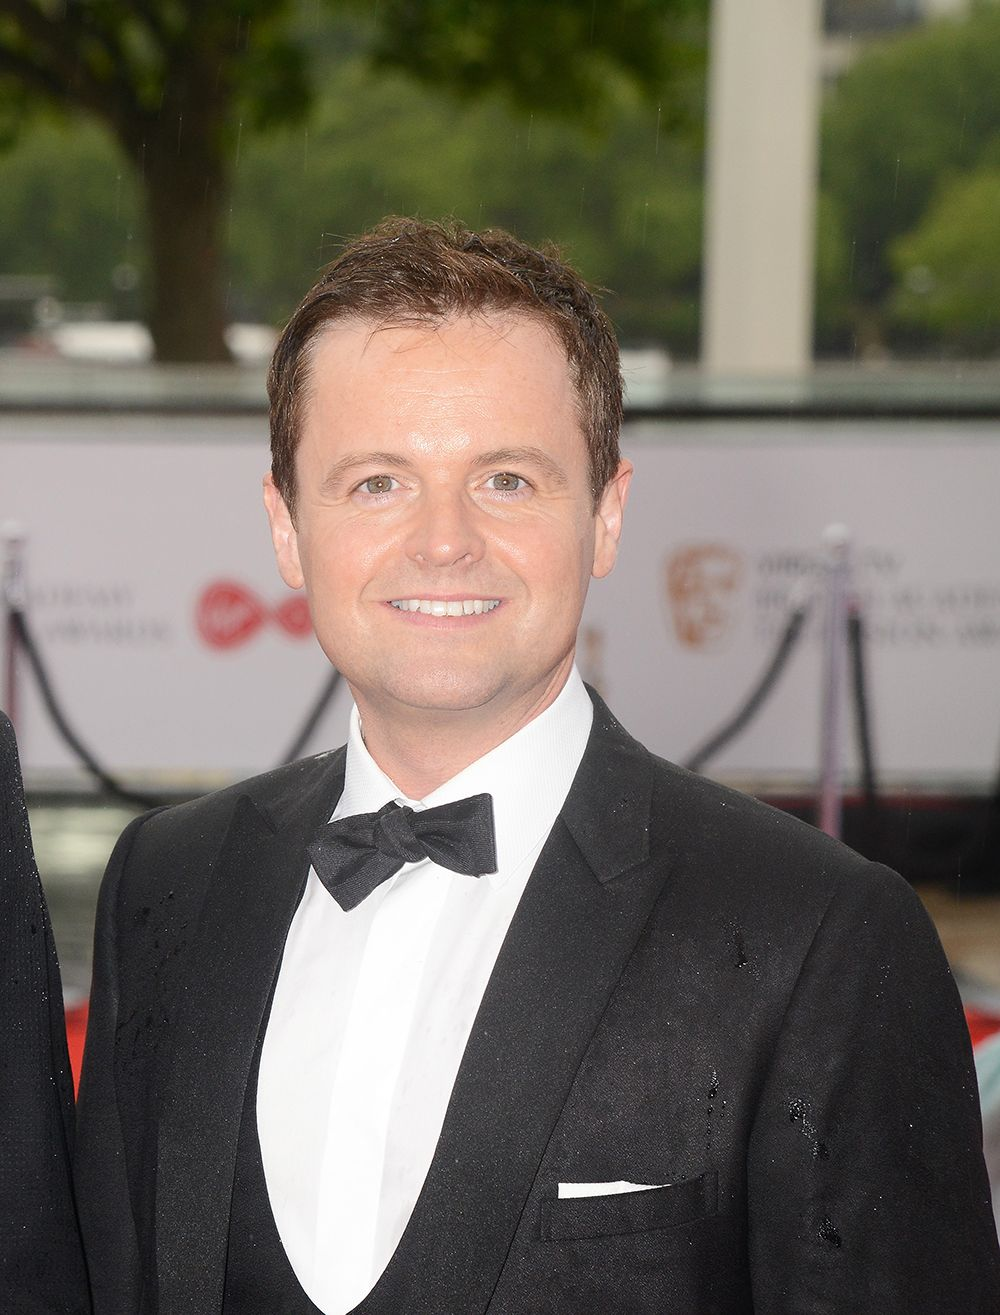 Https Uk Fashion A13526808 Tabria Majors Andrew Smith Classic Formal Shirt Cokelat S Declan Donnelly 1509446422